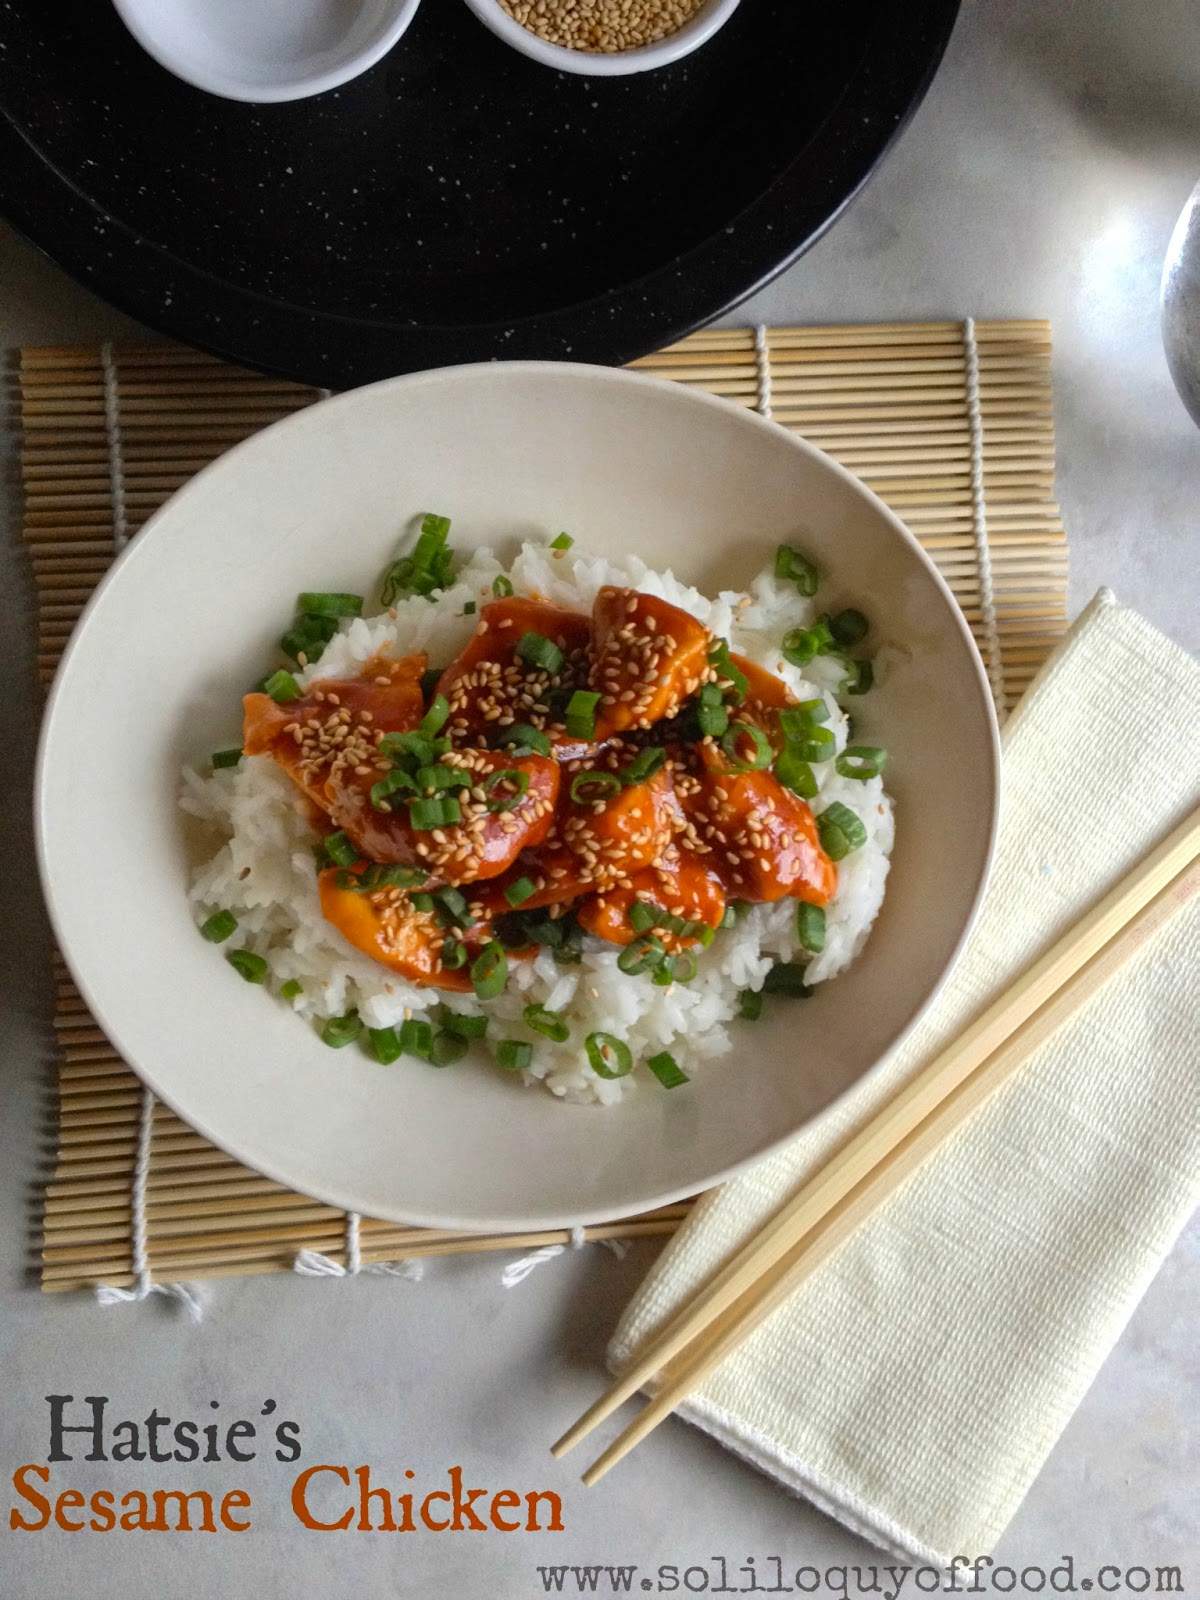 Hatsie's Sesame Chicken - www.soliloquyoffood.com